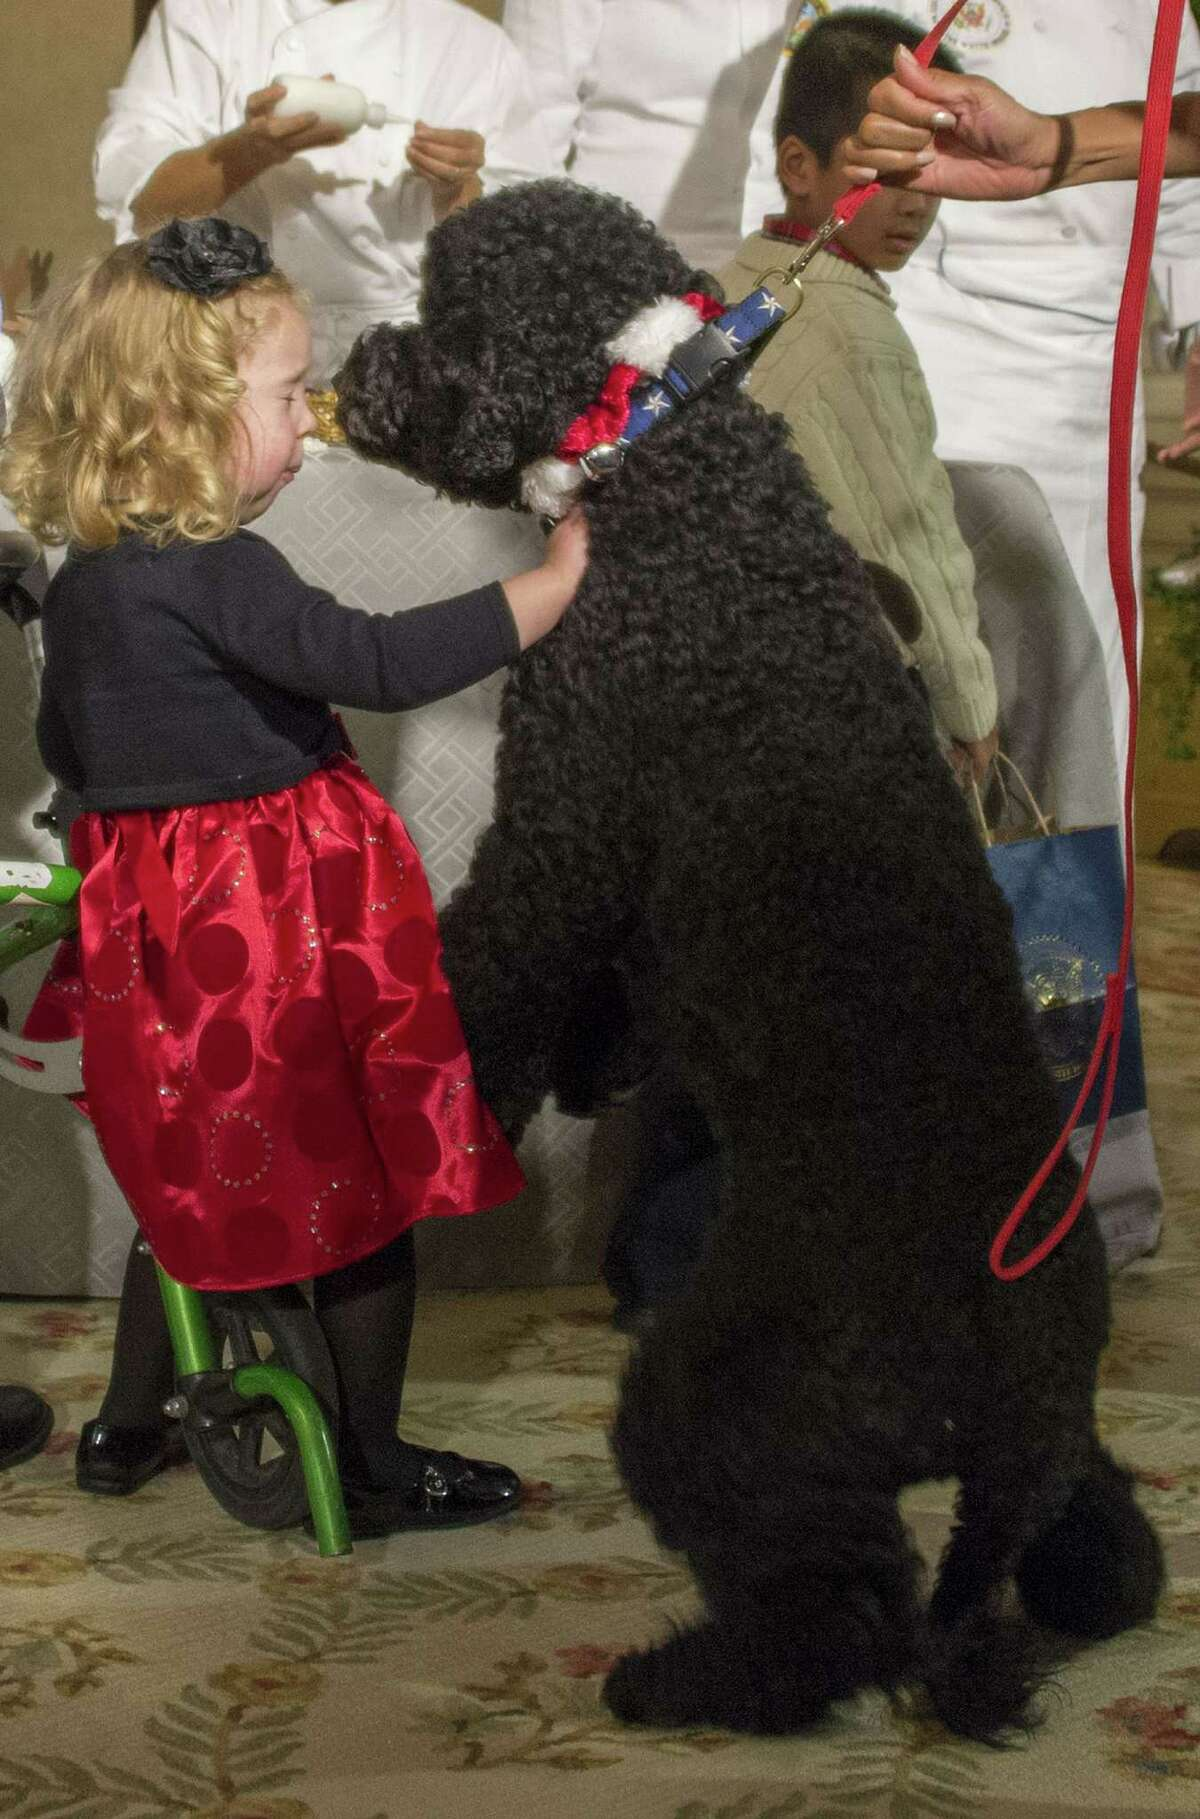 The Obama family dog Sunny jumps up on two-year-old Ashtyn Gardner right before she takes a tumble during the White House Christmas decorations viewing at the White House in Washington, DC, December 4, 2013.